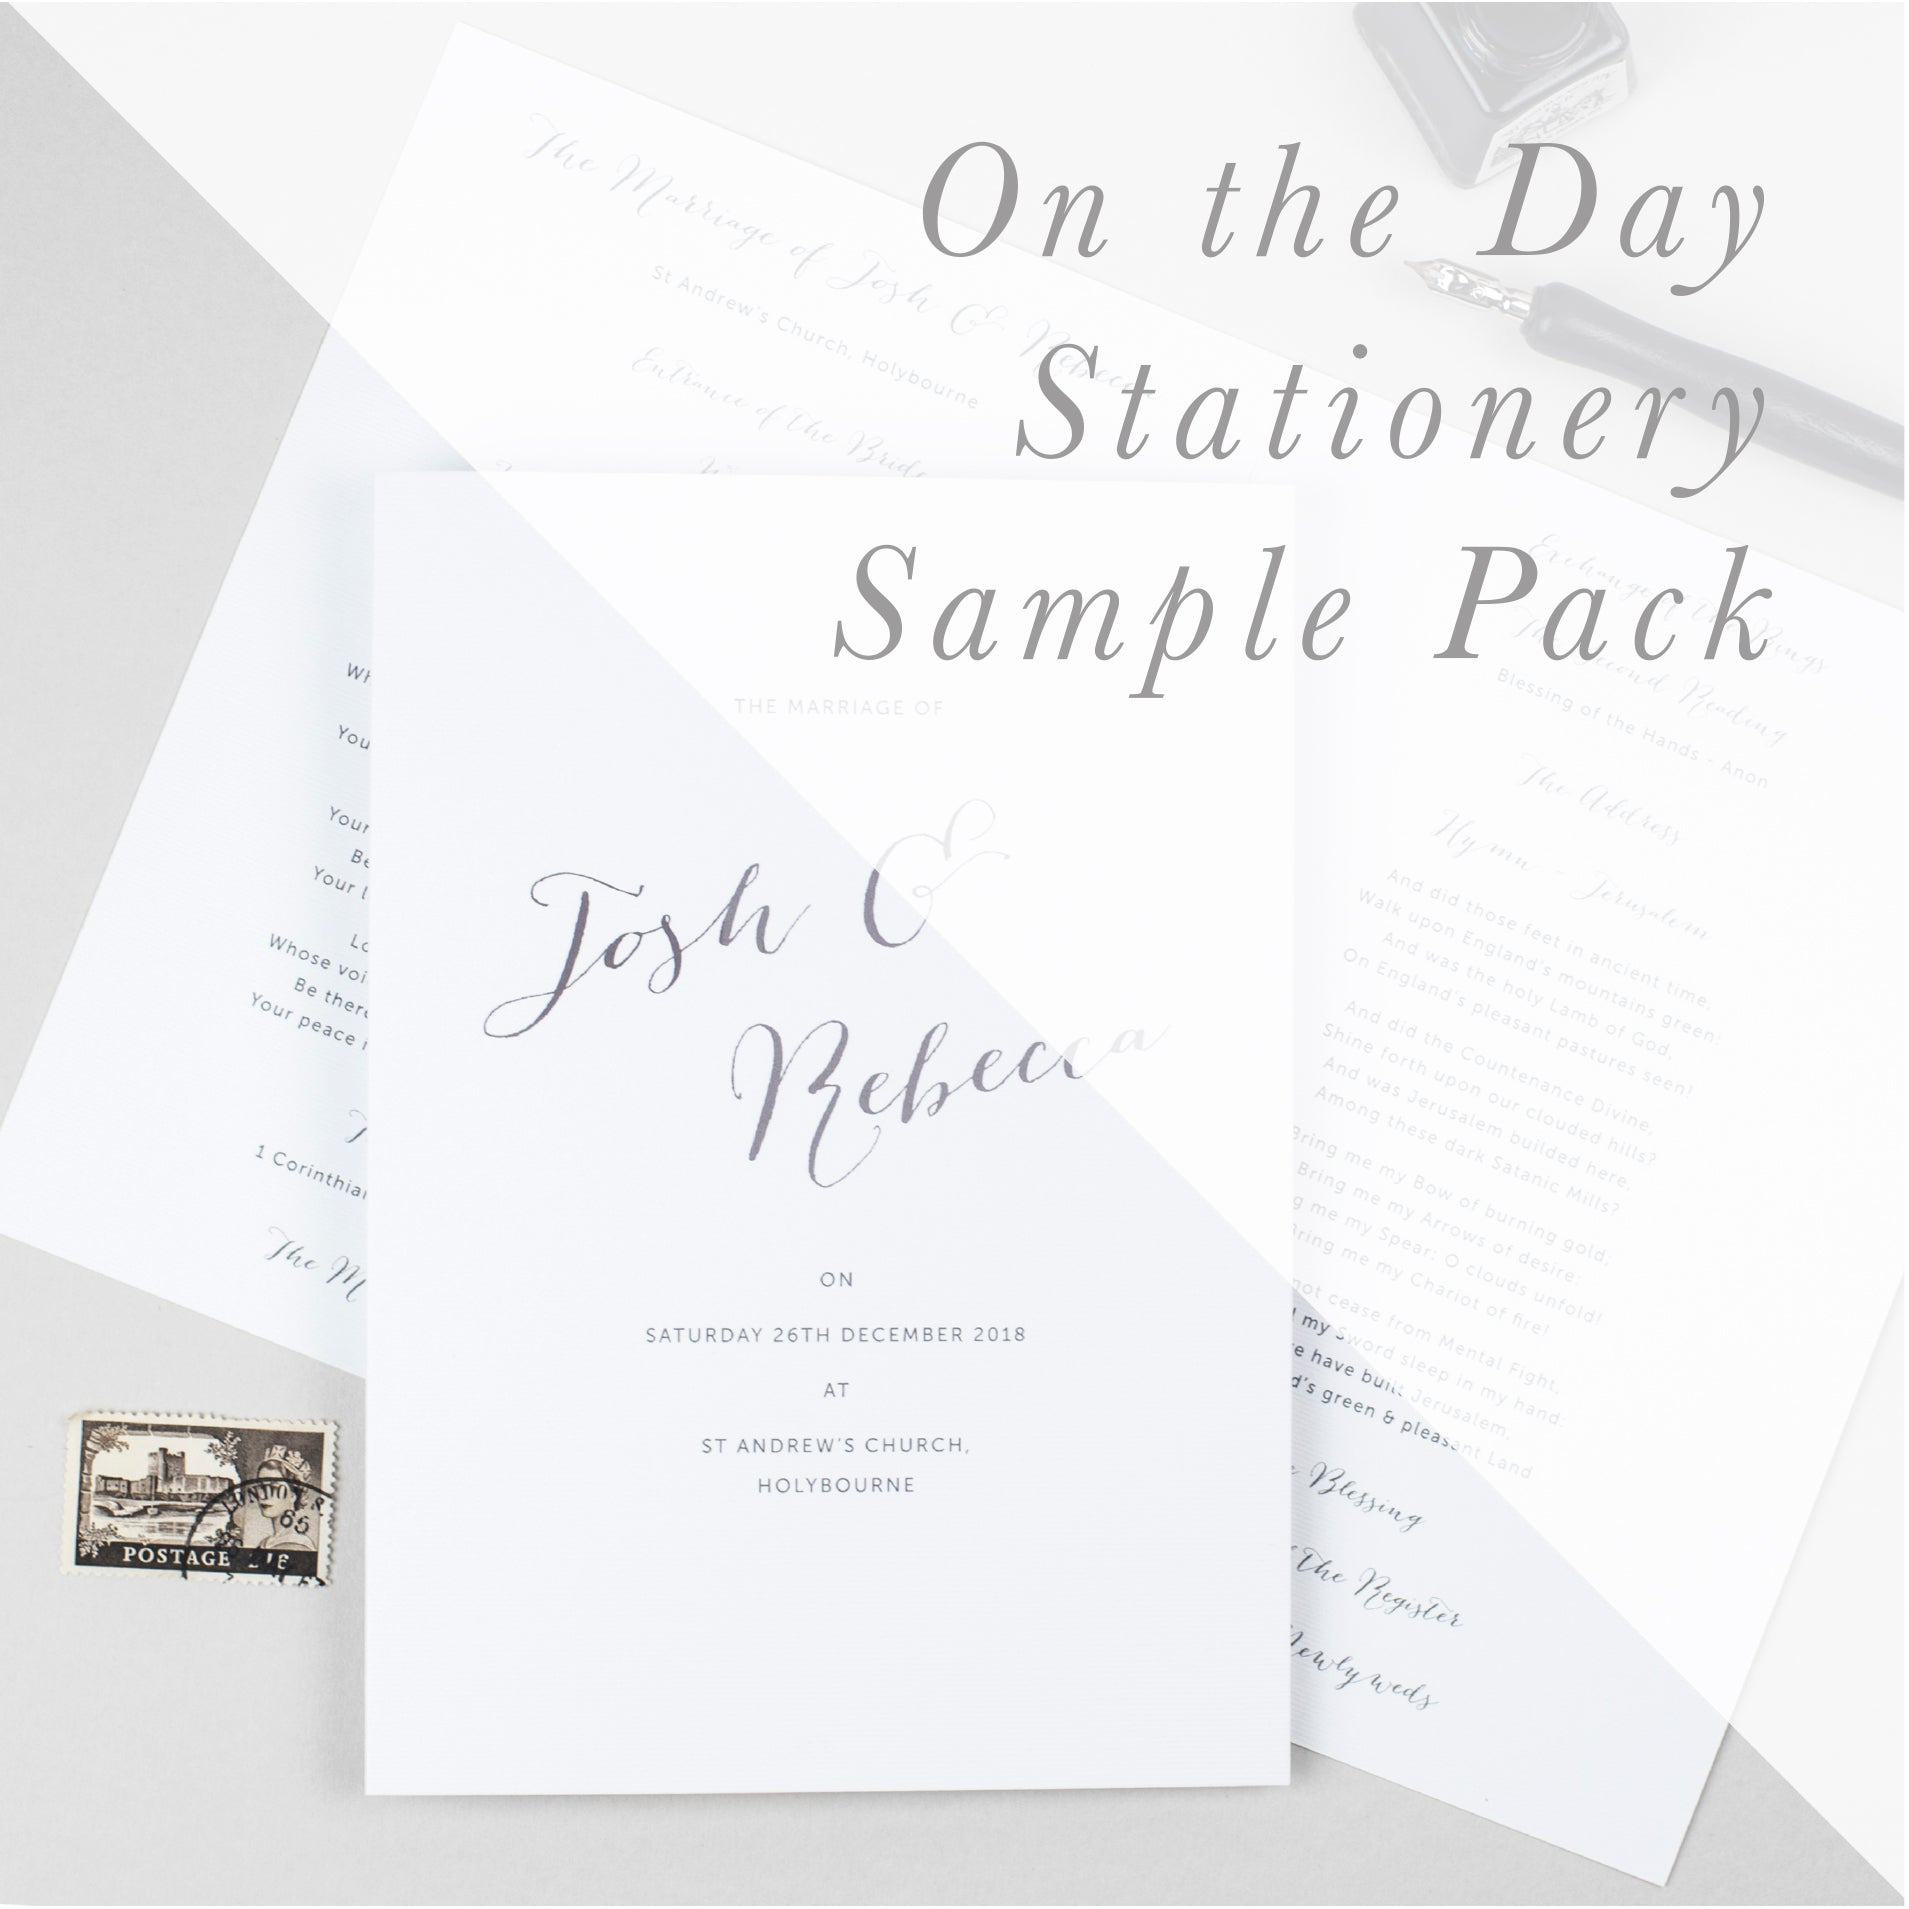 Sample Packs - On the Day Stationery - Pear Paper Co